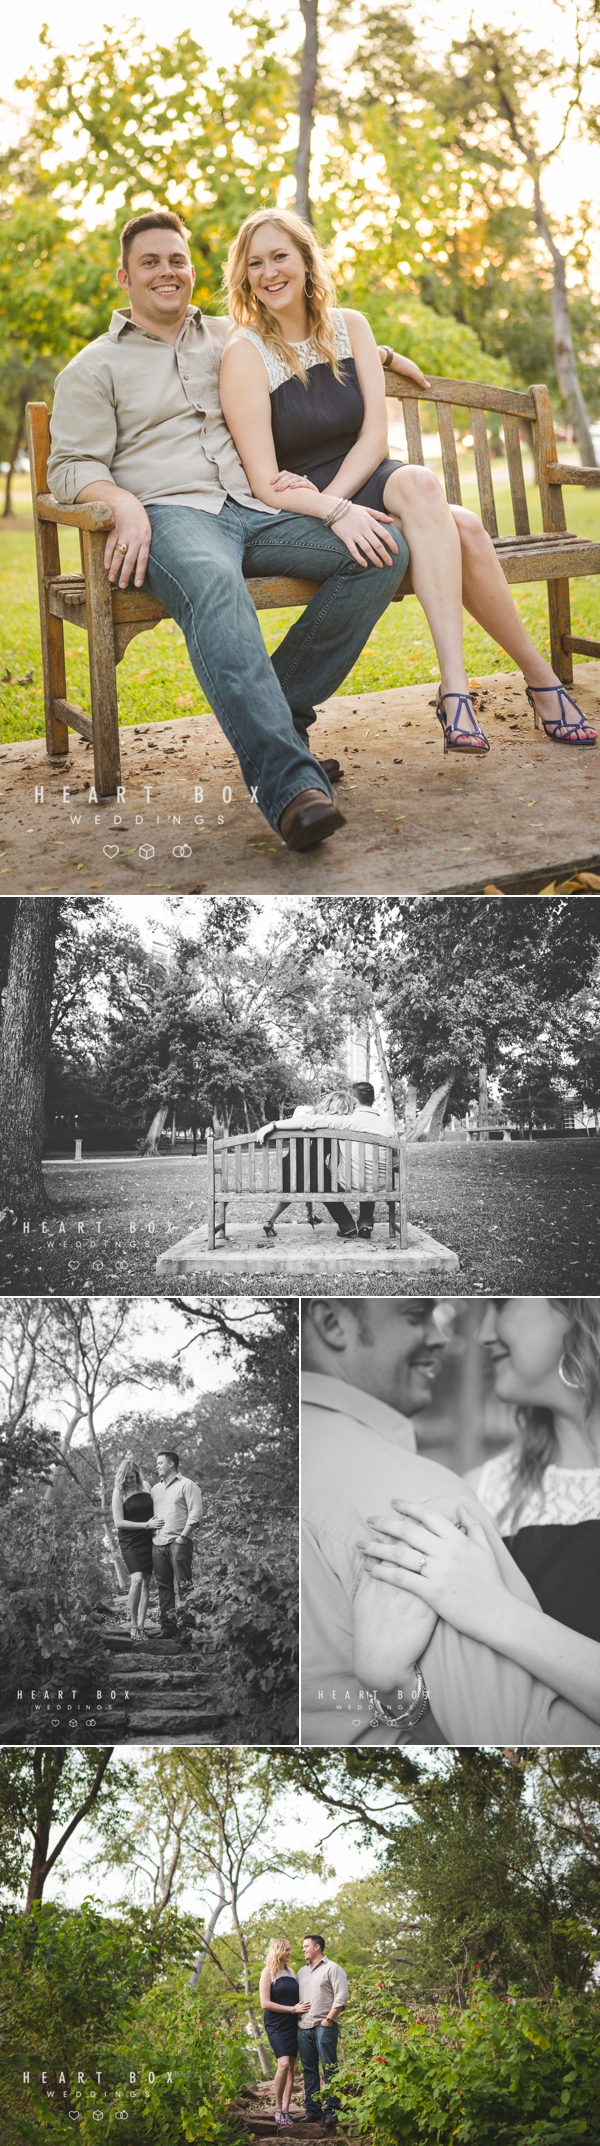 Denton Engagement Photography